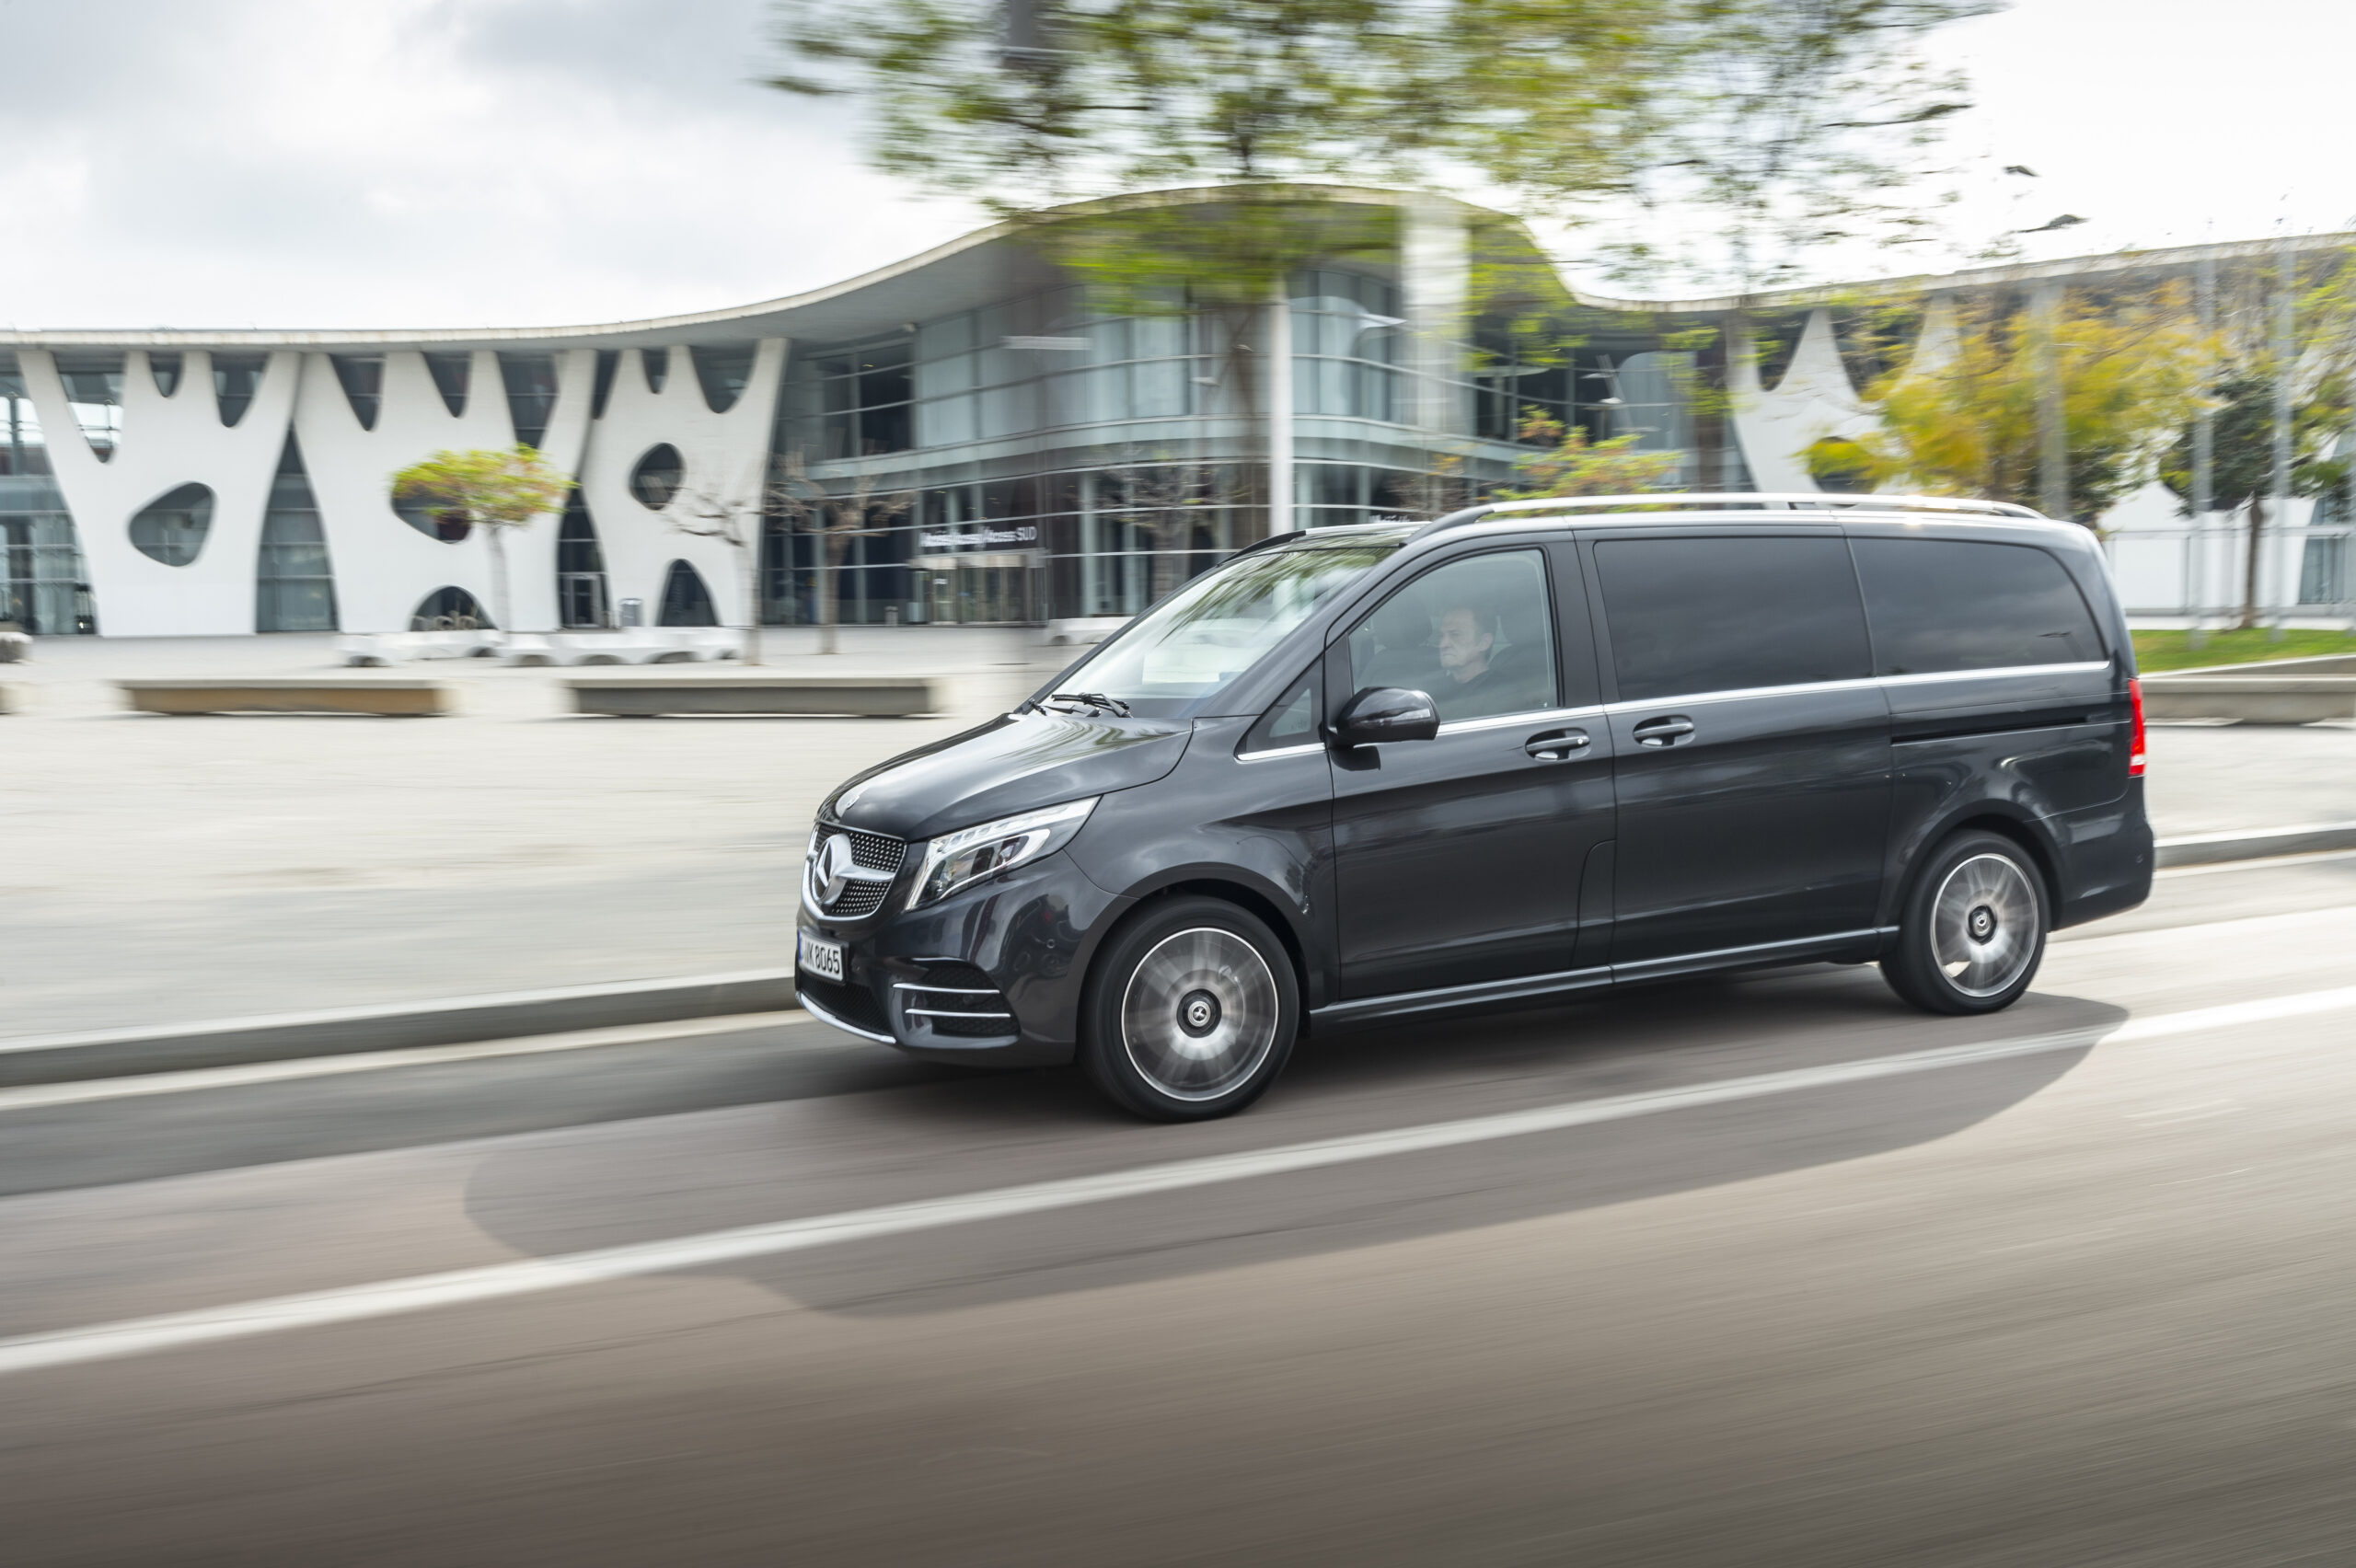 Die neue Mercedes-Benz V-Klasse – V 300 d 4MATIC; Exterieur, Ausstattungslinie AVANTGARDE, AMG Line, Graphitgrau metallic; Interieur, Ausstattungslinie AVANTGARDE, AMG Line, Leder Nappa Tartufo, Zierelement in Doppelstreifen-Optik;Kraftstoffverbrauch kombiniert 6,8-6,5 l/100 km, CO2-Emissionen kombiniert 179-172 g/km*  The new Mercedes-Benz V-Class – V 300 d 4MATIC; Exterior, Design and equipment line AVANTGARDE, AMG Line, Graphite grey metallic; Interior, Design and equipment line AVANTGARDE, AMG Line, Leather Nappa tartufo, trim element in twin-strip look;Combined fuel consumption: 6.8-6.5 l/100 km; combined CO2 emissions: 179-172 g/km*